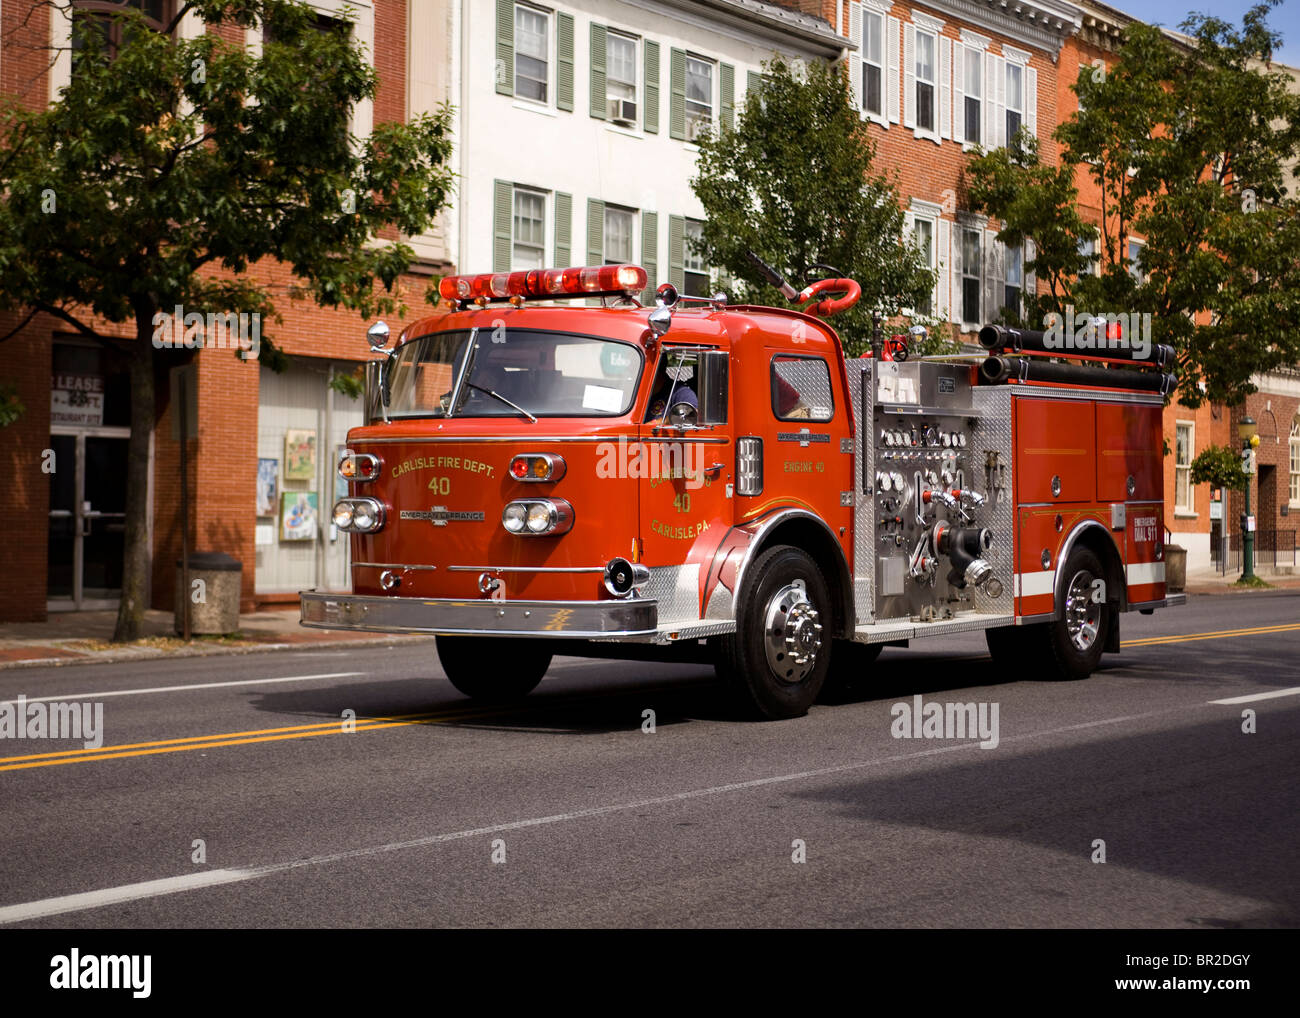 American LaFrance Vintage Fire Truck   Pennsylvania, USA   Stock Image